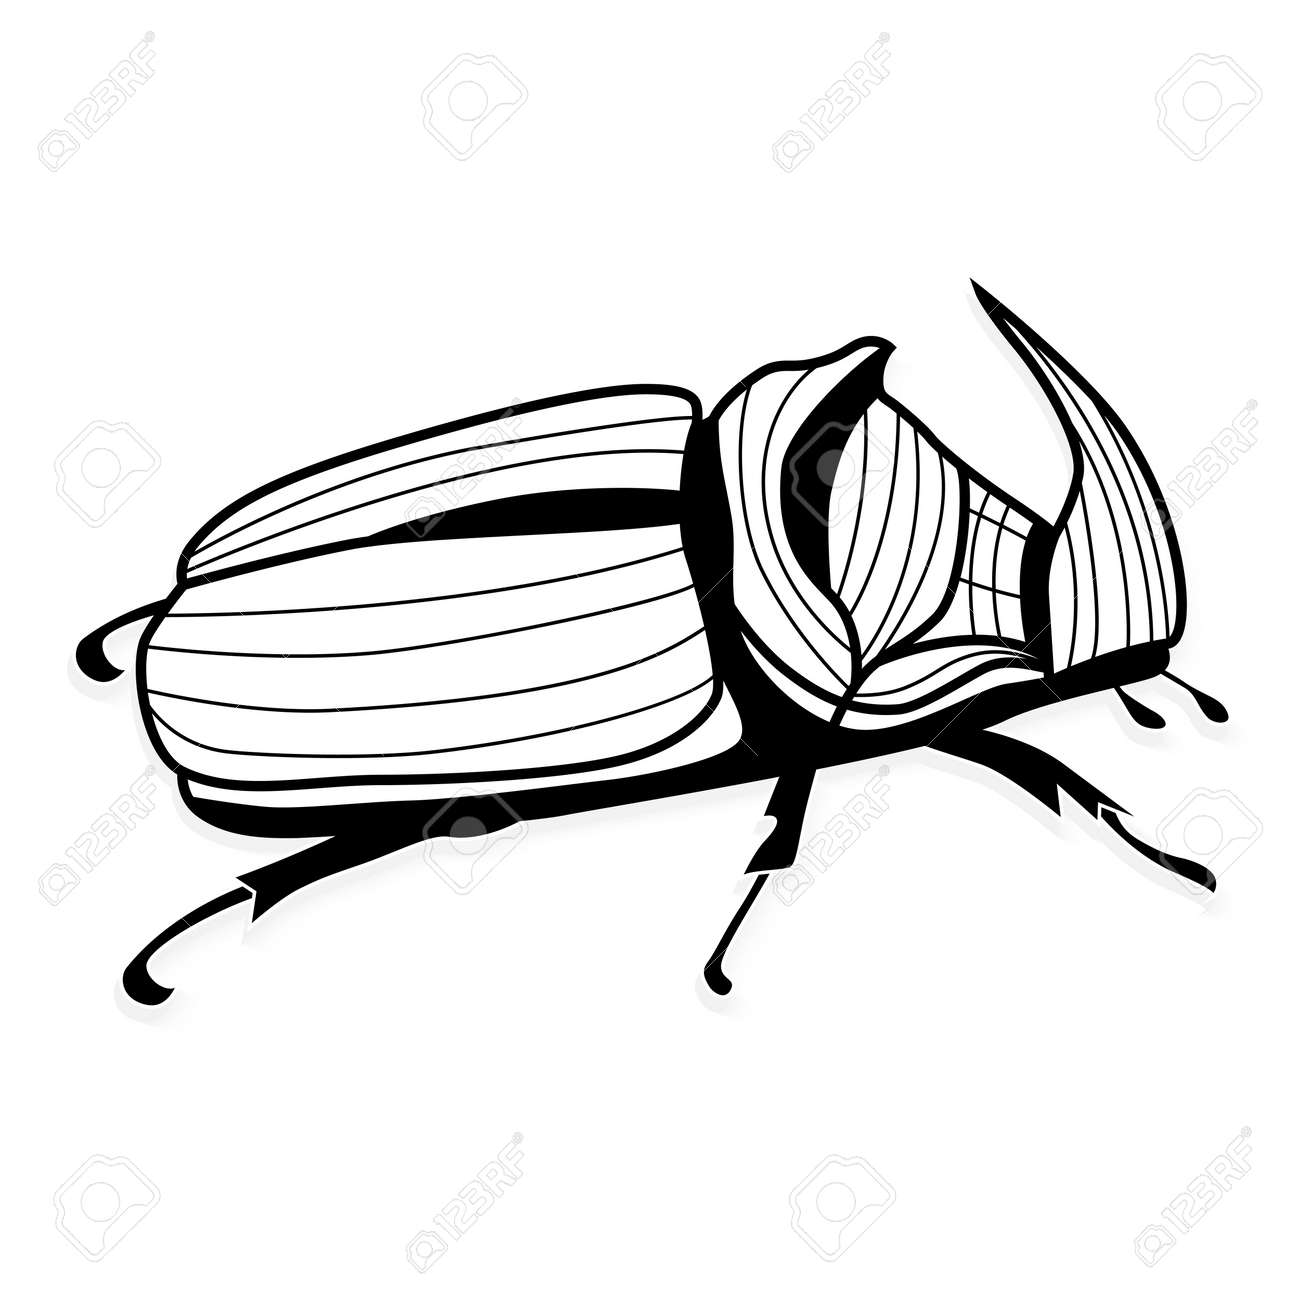 rhinoceros beetle vector tattoo or for t shirts royalty free Rhinoceros Pix rhinoceros beetle vector tattoo or for t shirts stock vector 43641722